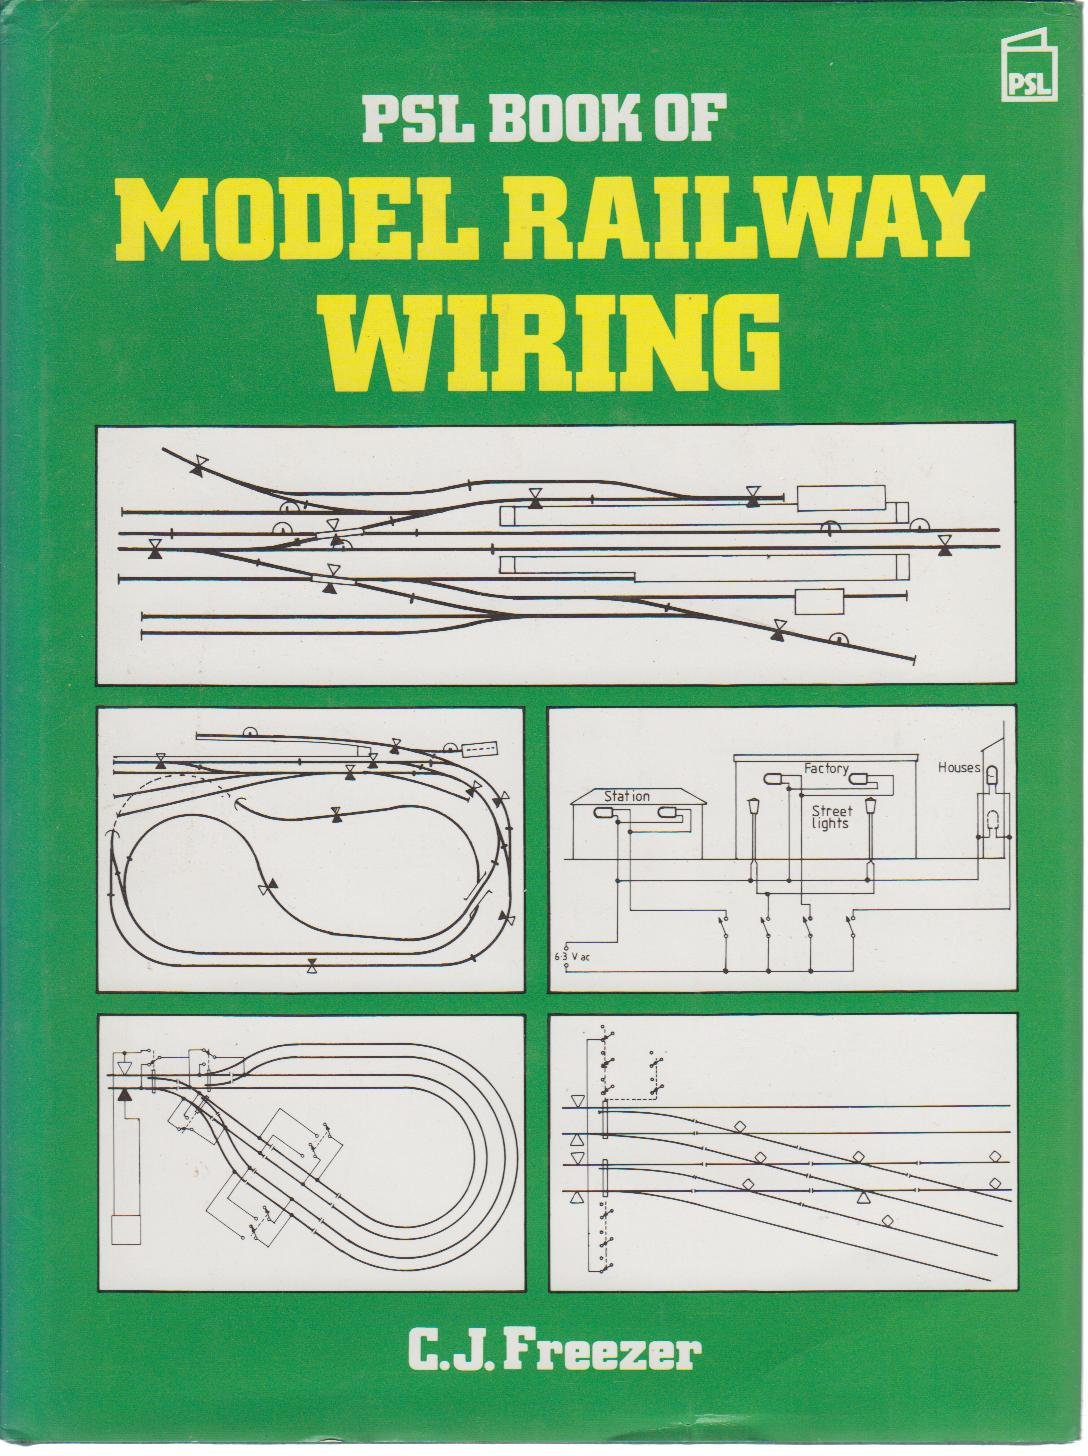 Psl Book Of Model Railway Wiring Cj Freezer Sample Dcc Diagrams 9781852601737 Books